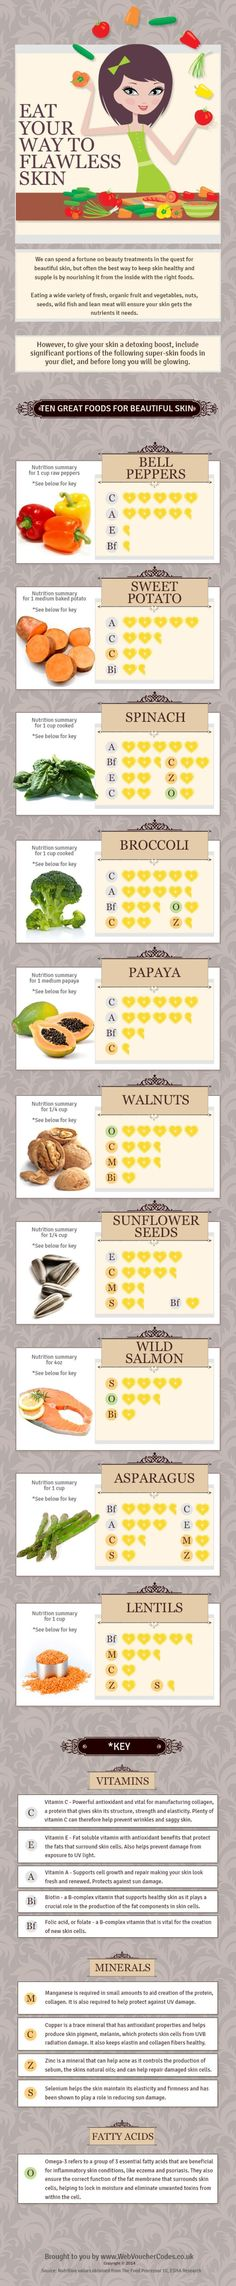 Top Ten Foods for Beautiful Skin Infographic by We